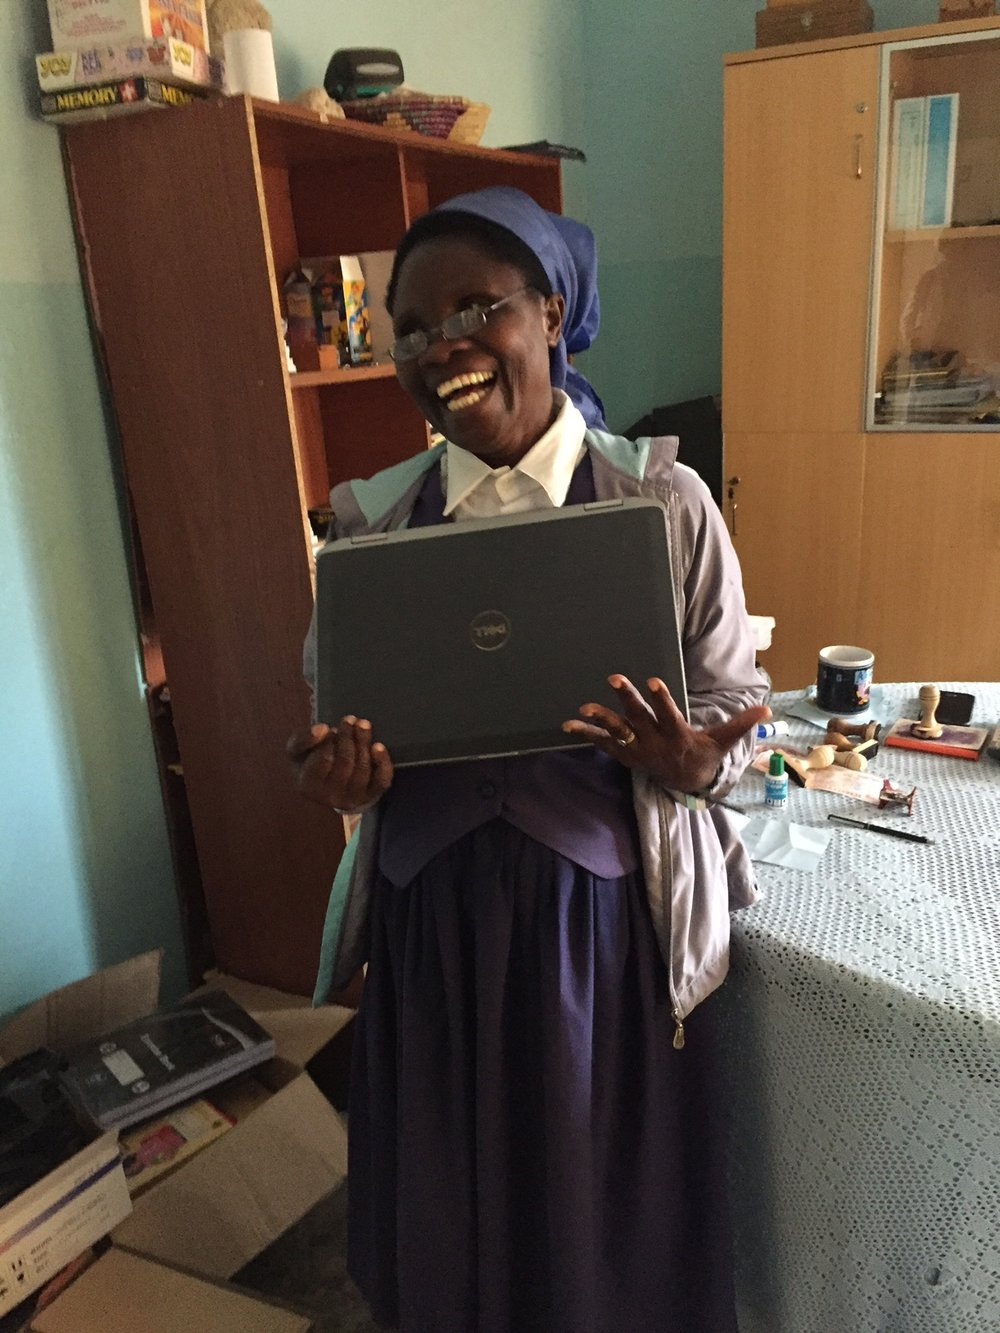 Thanks to Greens Farms Academy and Zeta Interactive, we now have 15 laptops to serve the orphans who are enrolled in university and the SJO/Heaven school staff and computer lab. We are always seeking more laptops. If you have a used one that is still in good working order, please let me know at anne@uniteafricafoundation.org